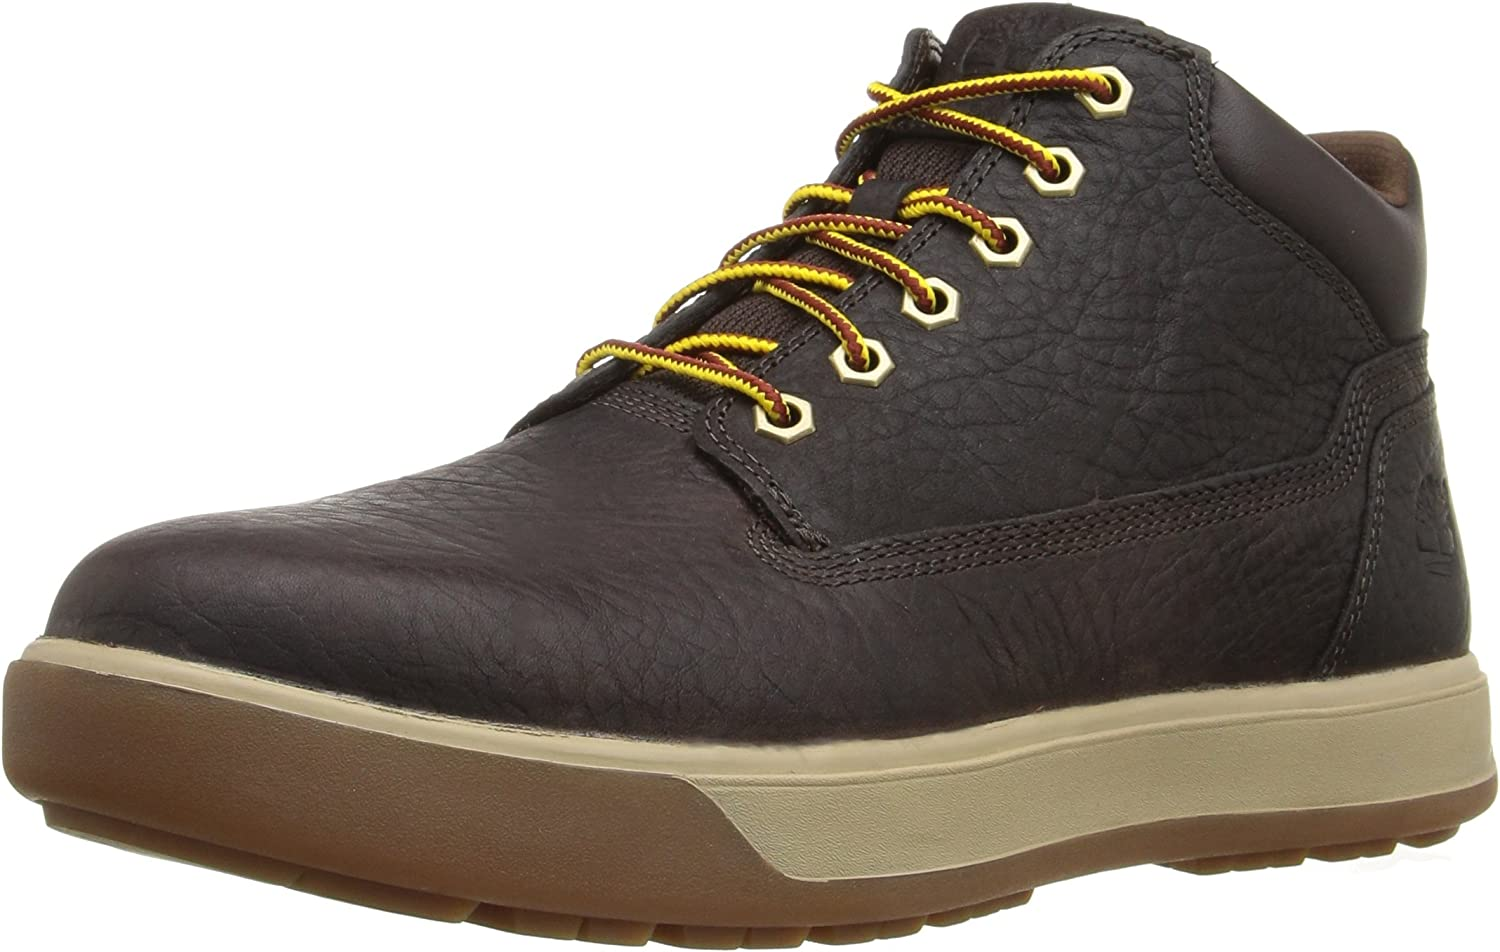 Manufacturer direct delivery Shipping included Timberland Men's Tenmile Boot Leather Chukka